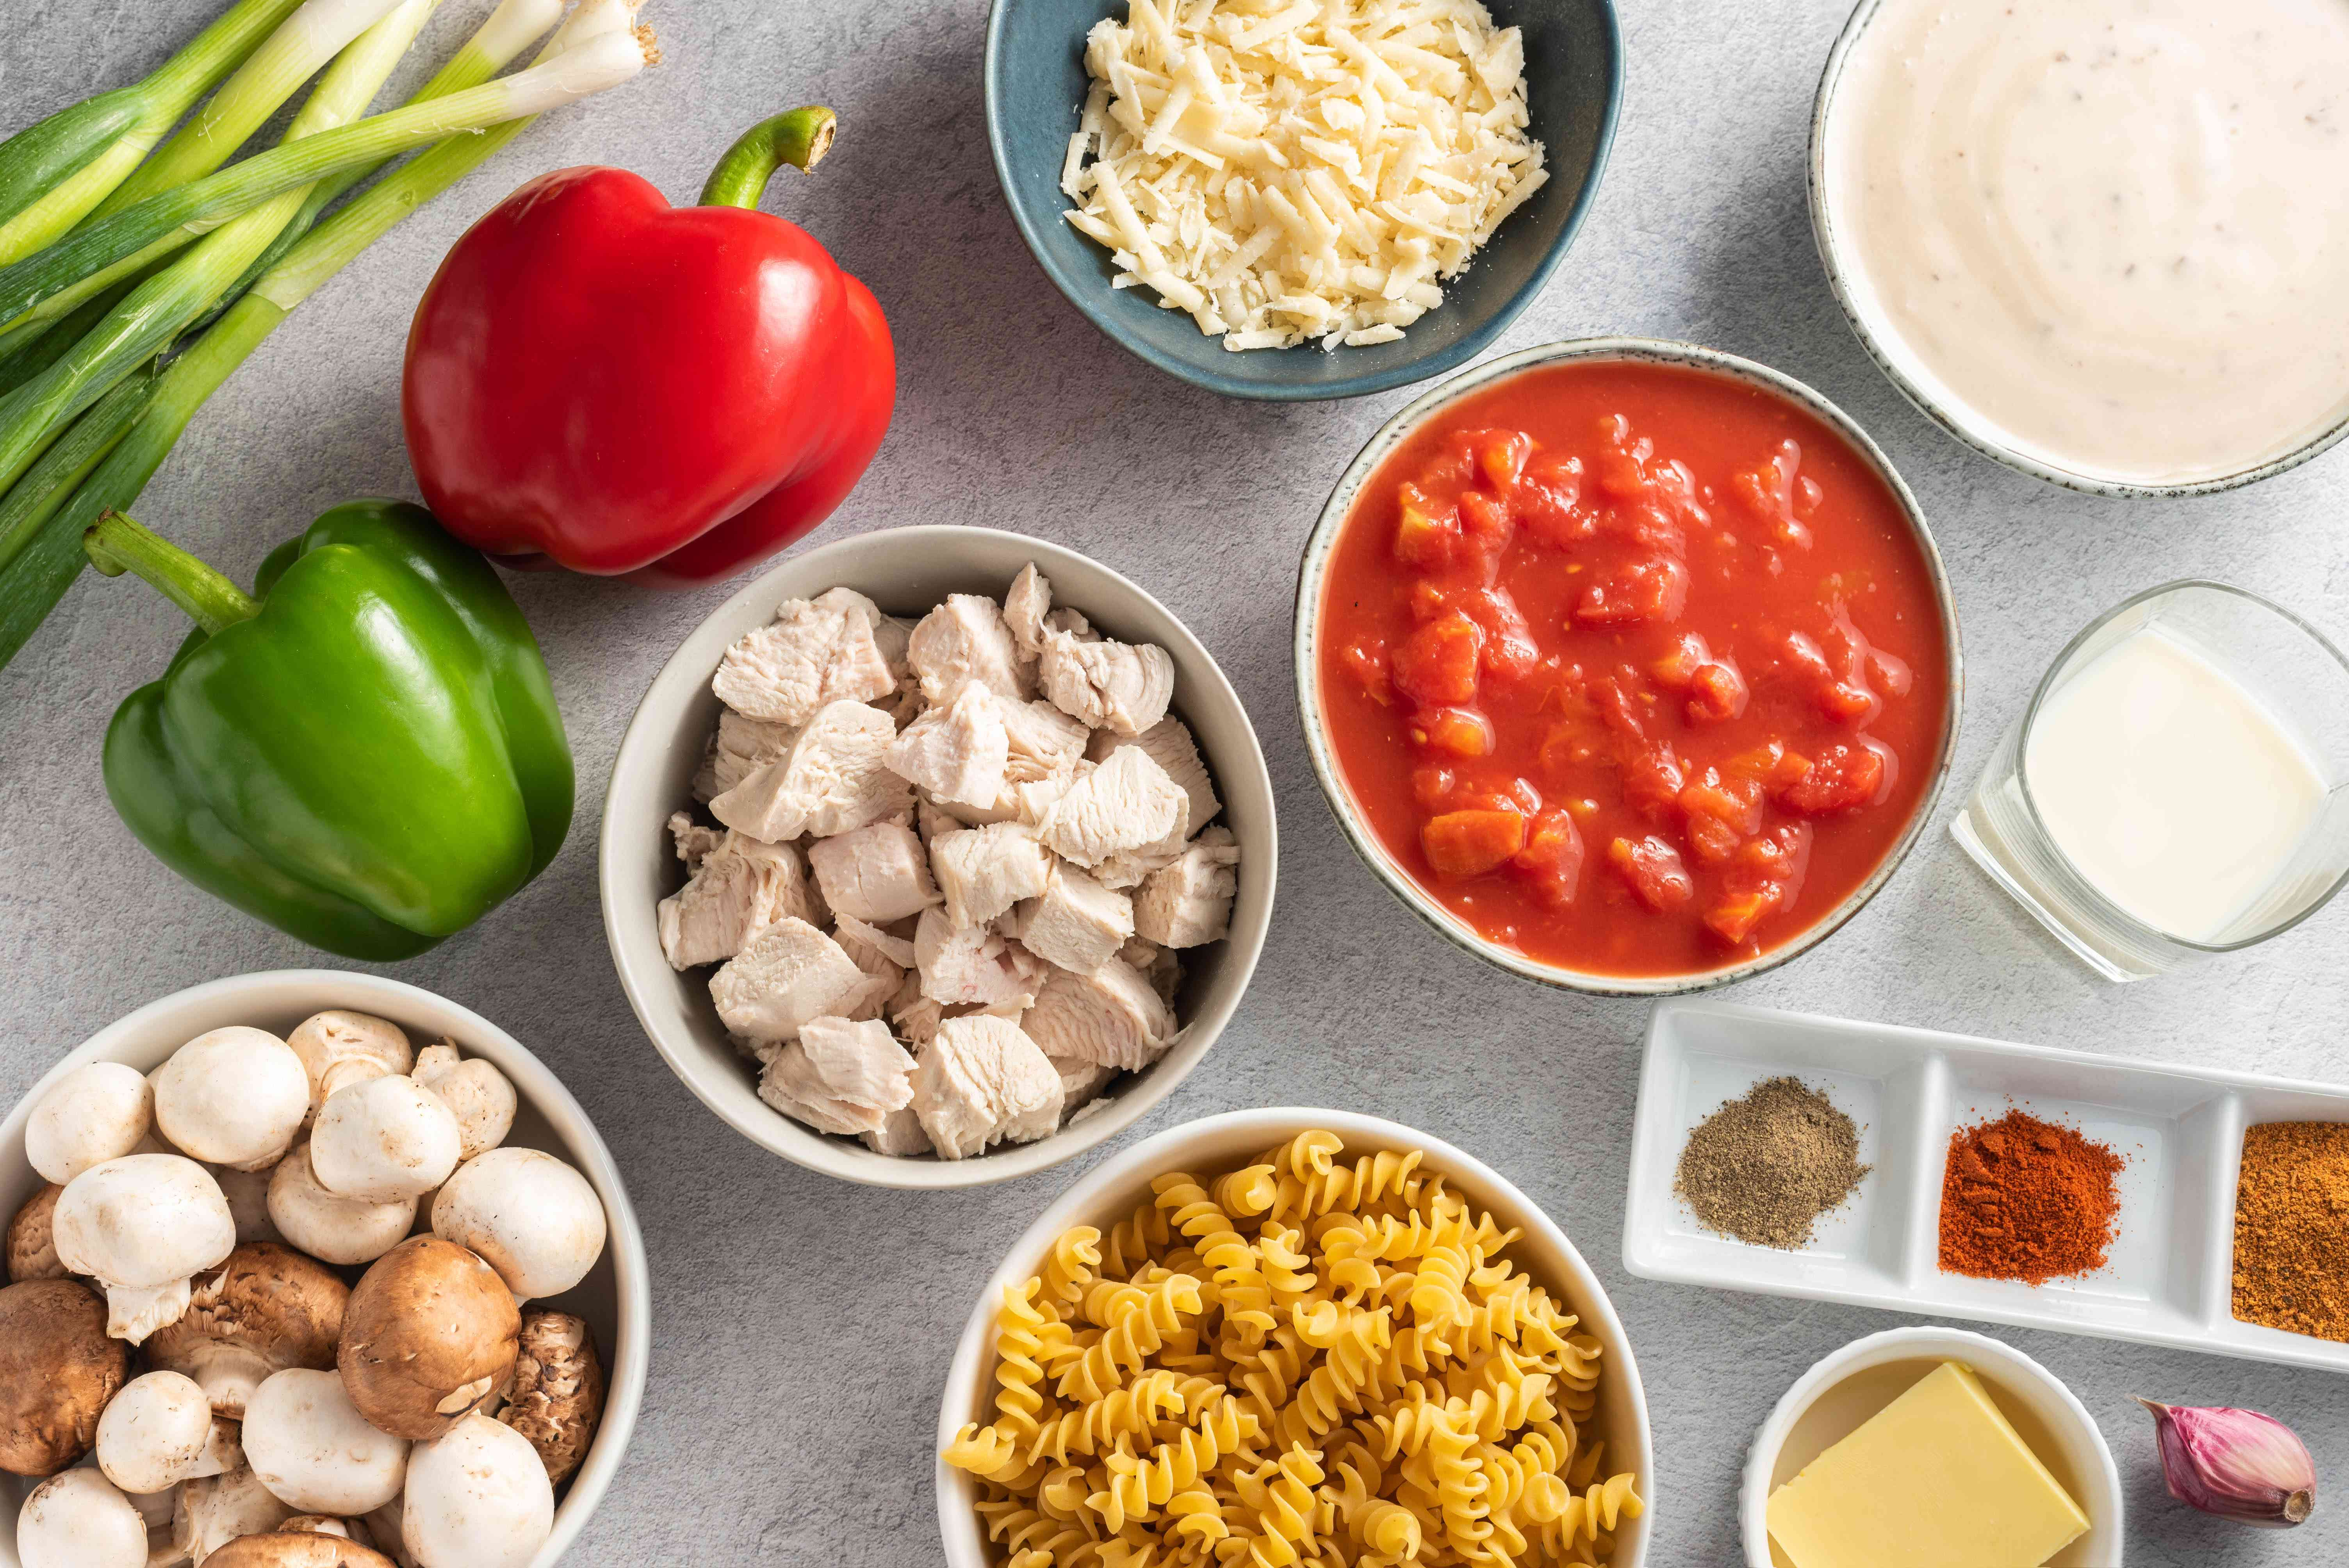 Ingredients for spicy Cajun chicken and pasta